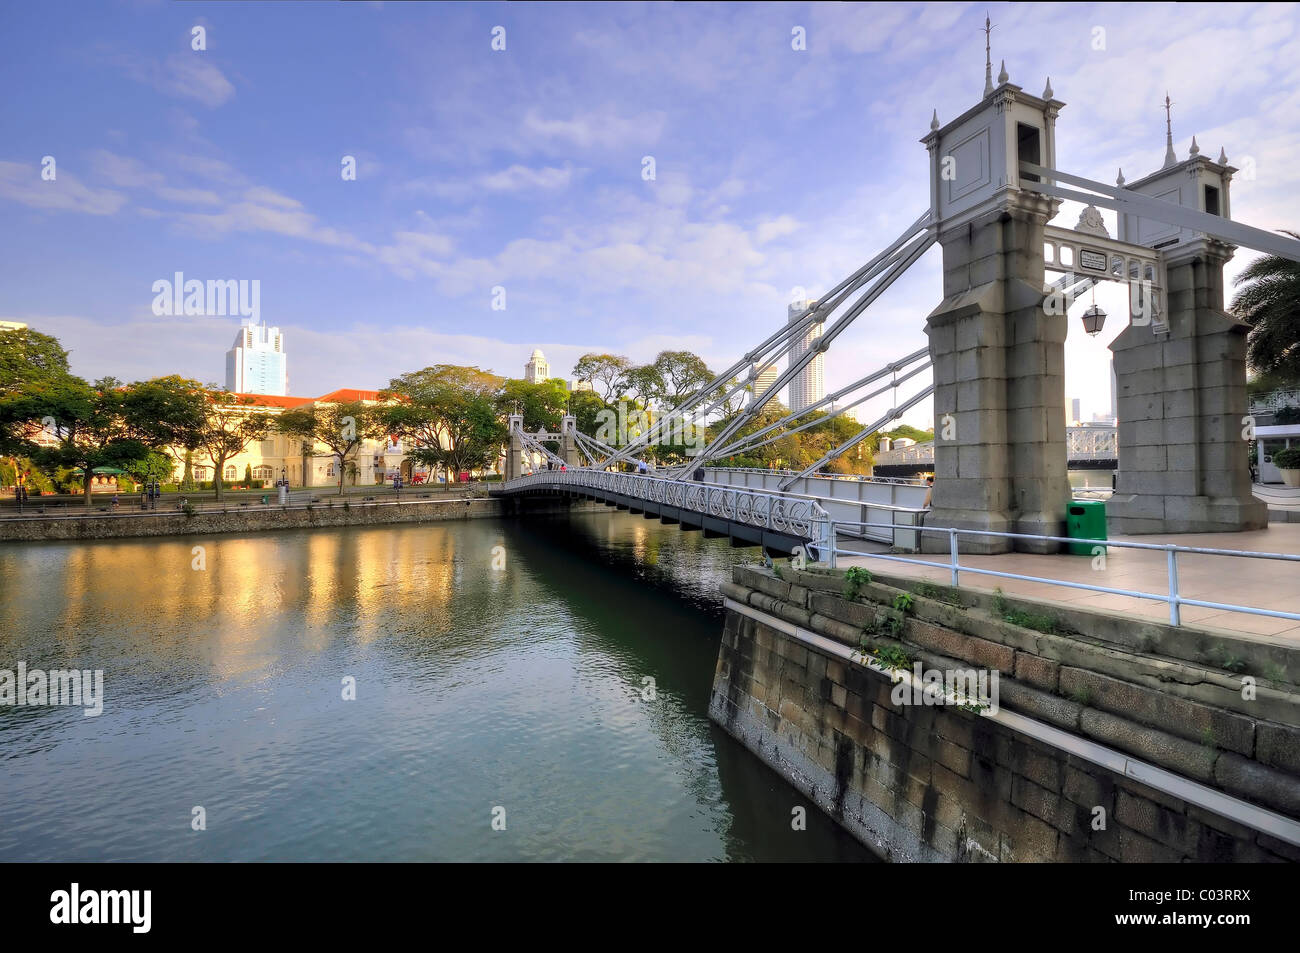 The historic Cavenagh Bridge spanning the Singapore River and overlooking the Singapore City Hall skyline. - Stock Image